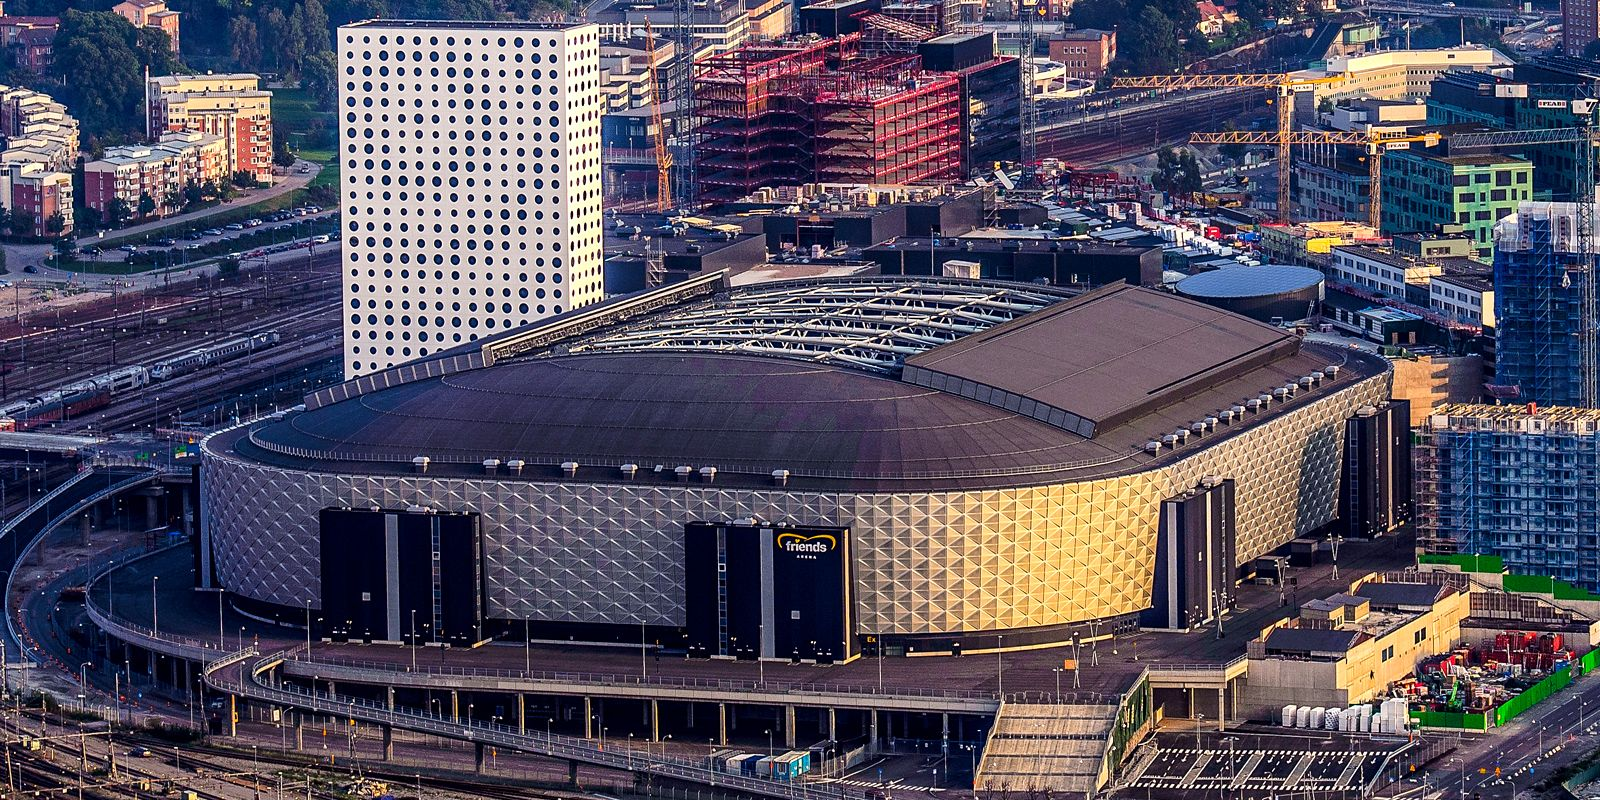 Friends Arena StadiumDB